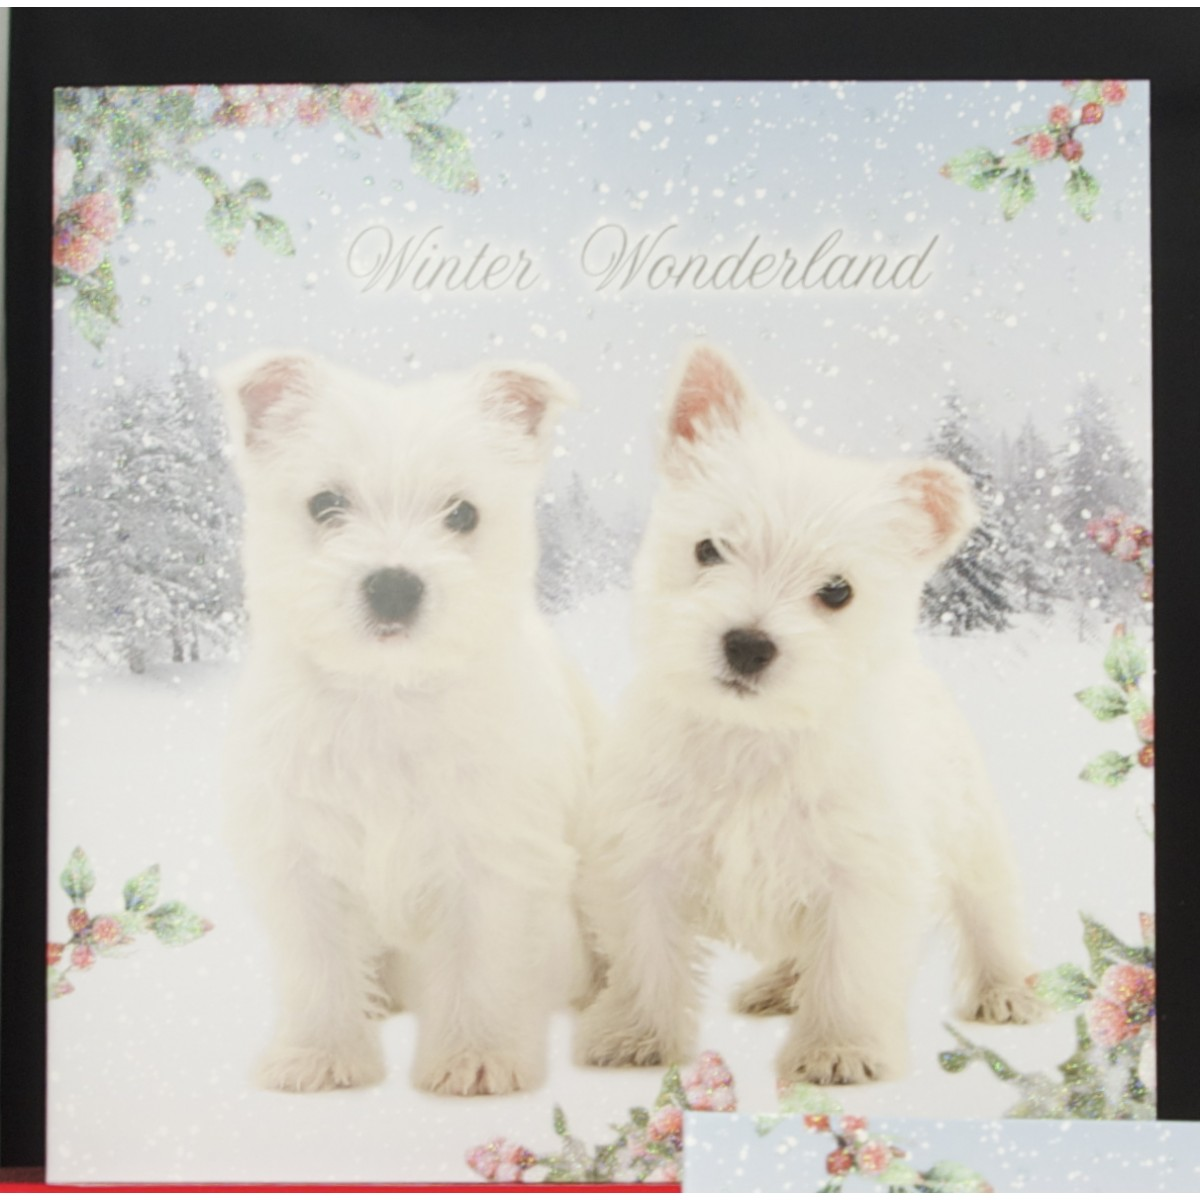 Luxury Westie Christmas Cards | West highland terrier Xmas gifts